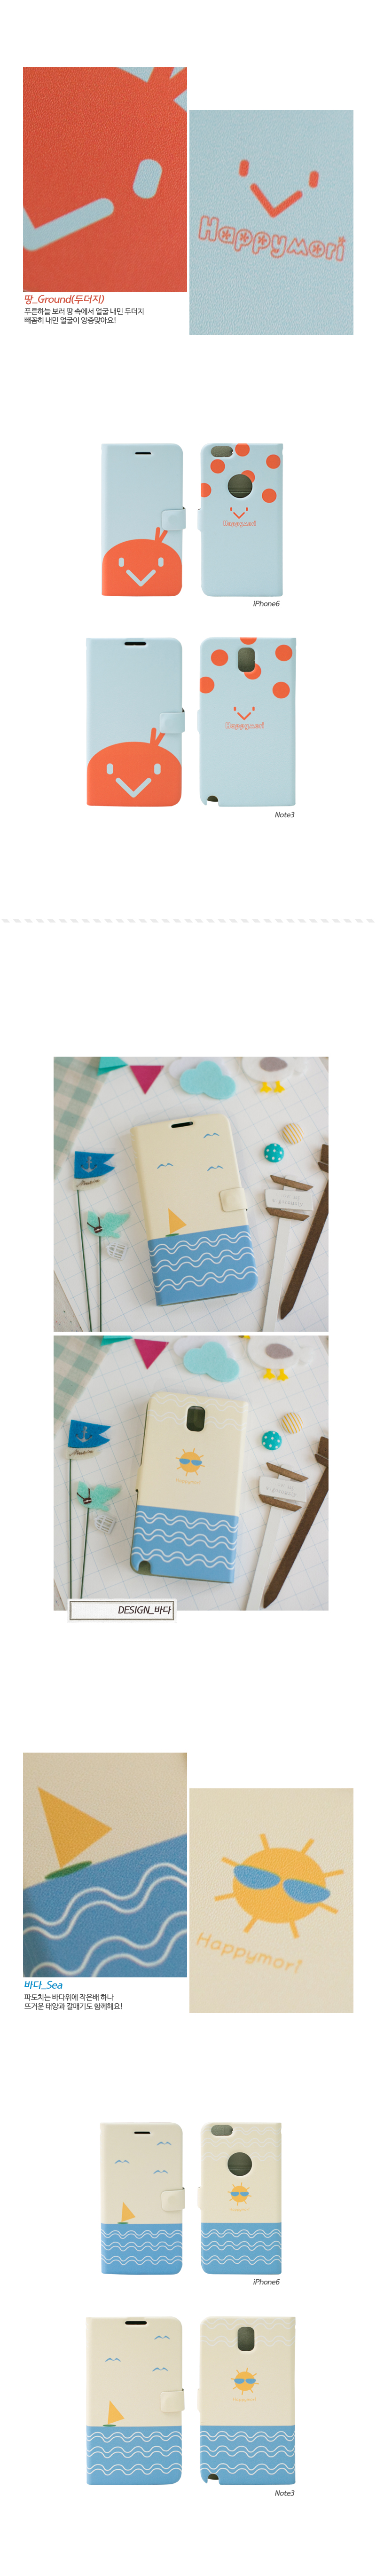 [HAPPYMORI] Flip Cover Case _ Plain Motif1(iPhone4_4s,iPhone5_5s,iPhone6_6s)